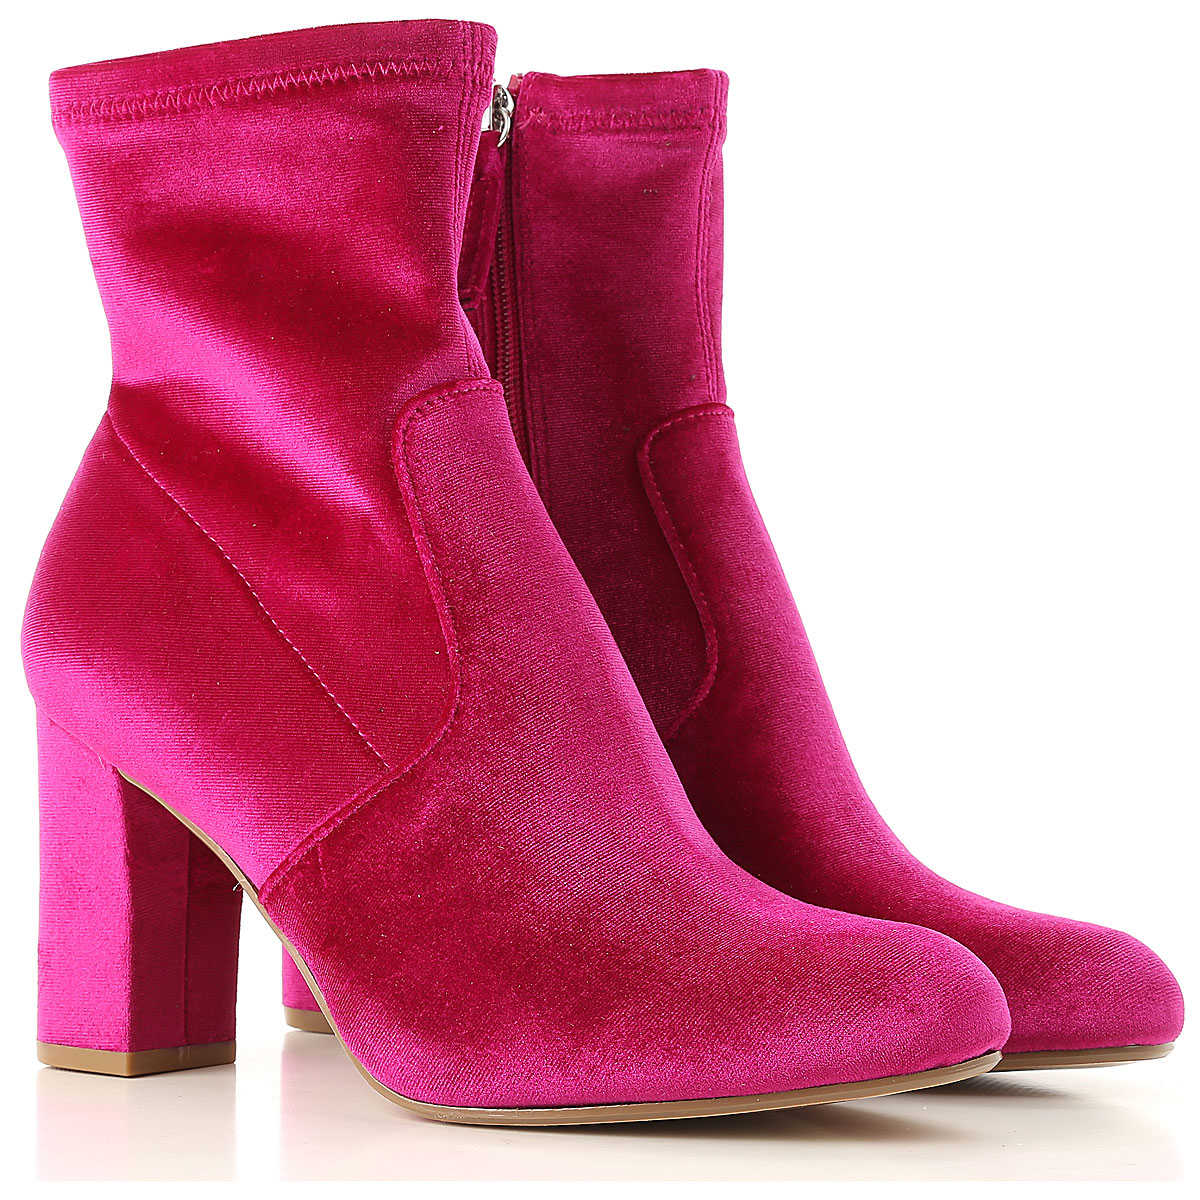 Steve Madden Boots for Women Booties On Sale SE - GOOFASH